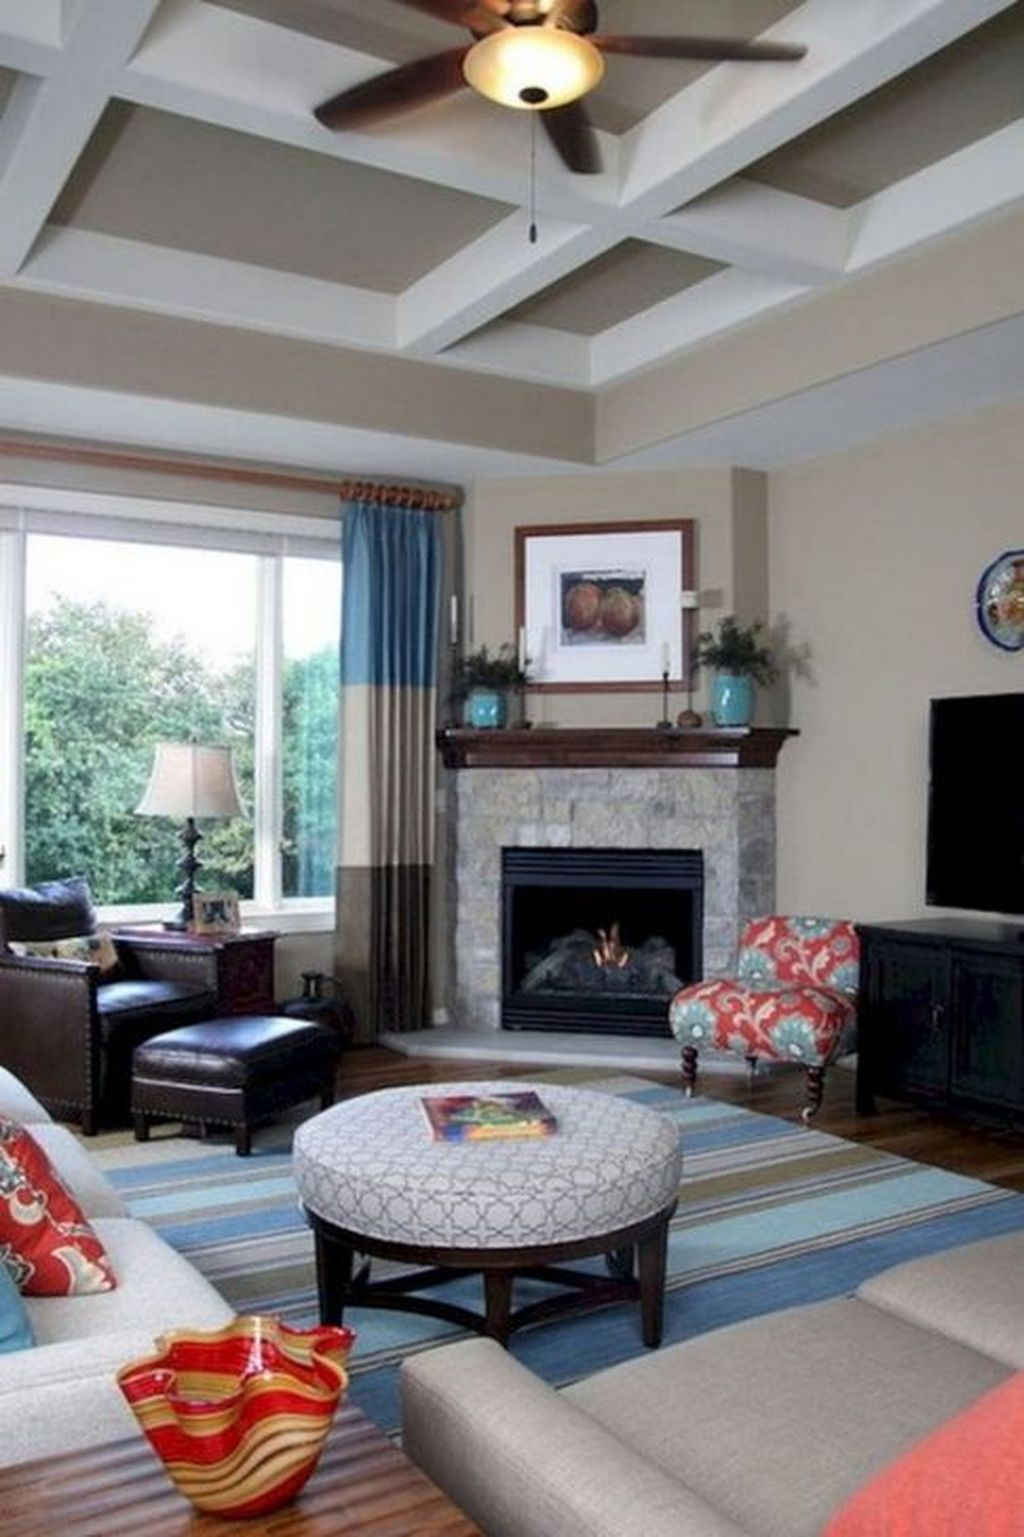 10 Contemporary Farmhouse Fireplace for Small Living Room ...